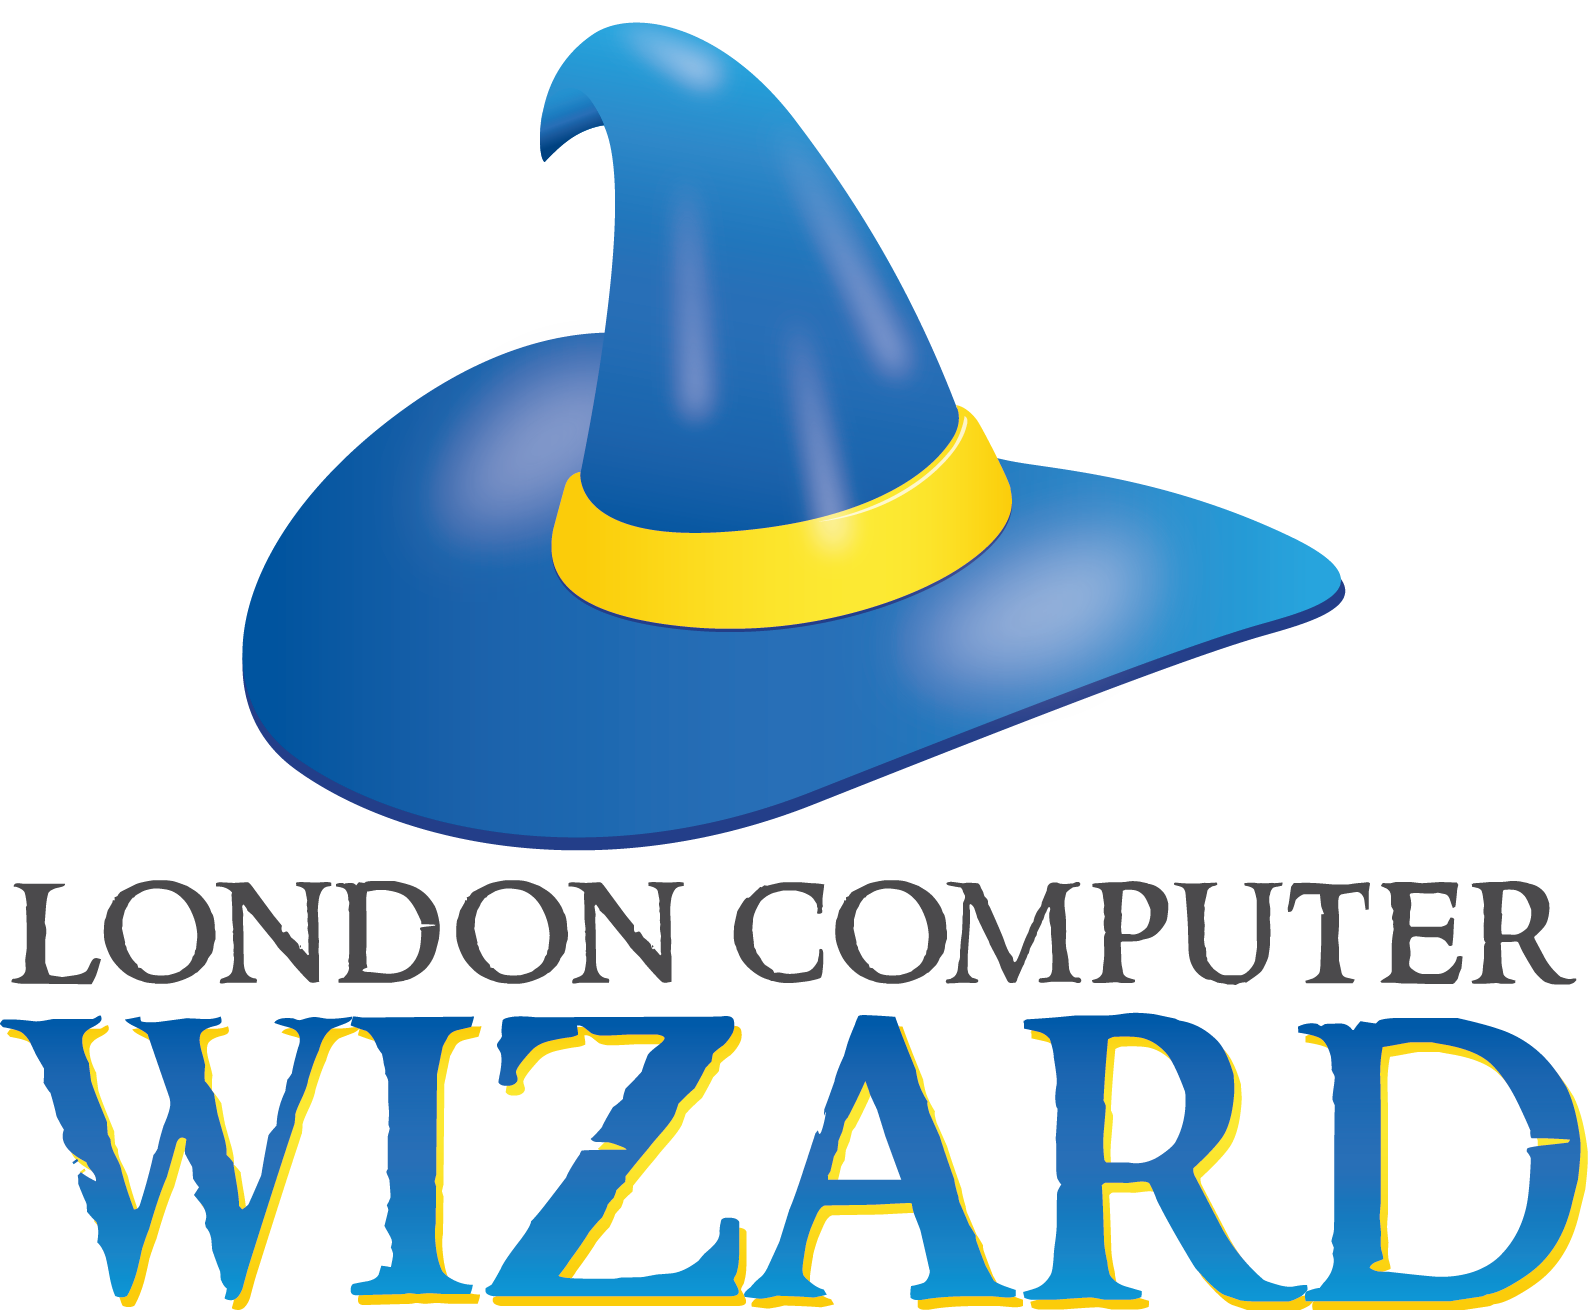 London Computer Wizard